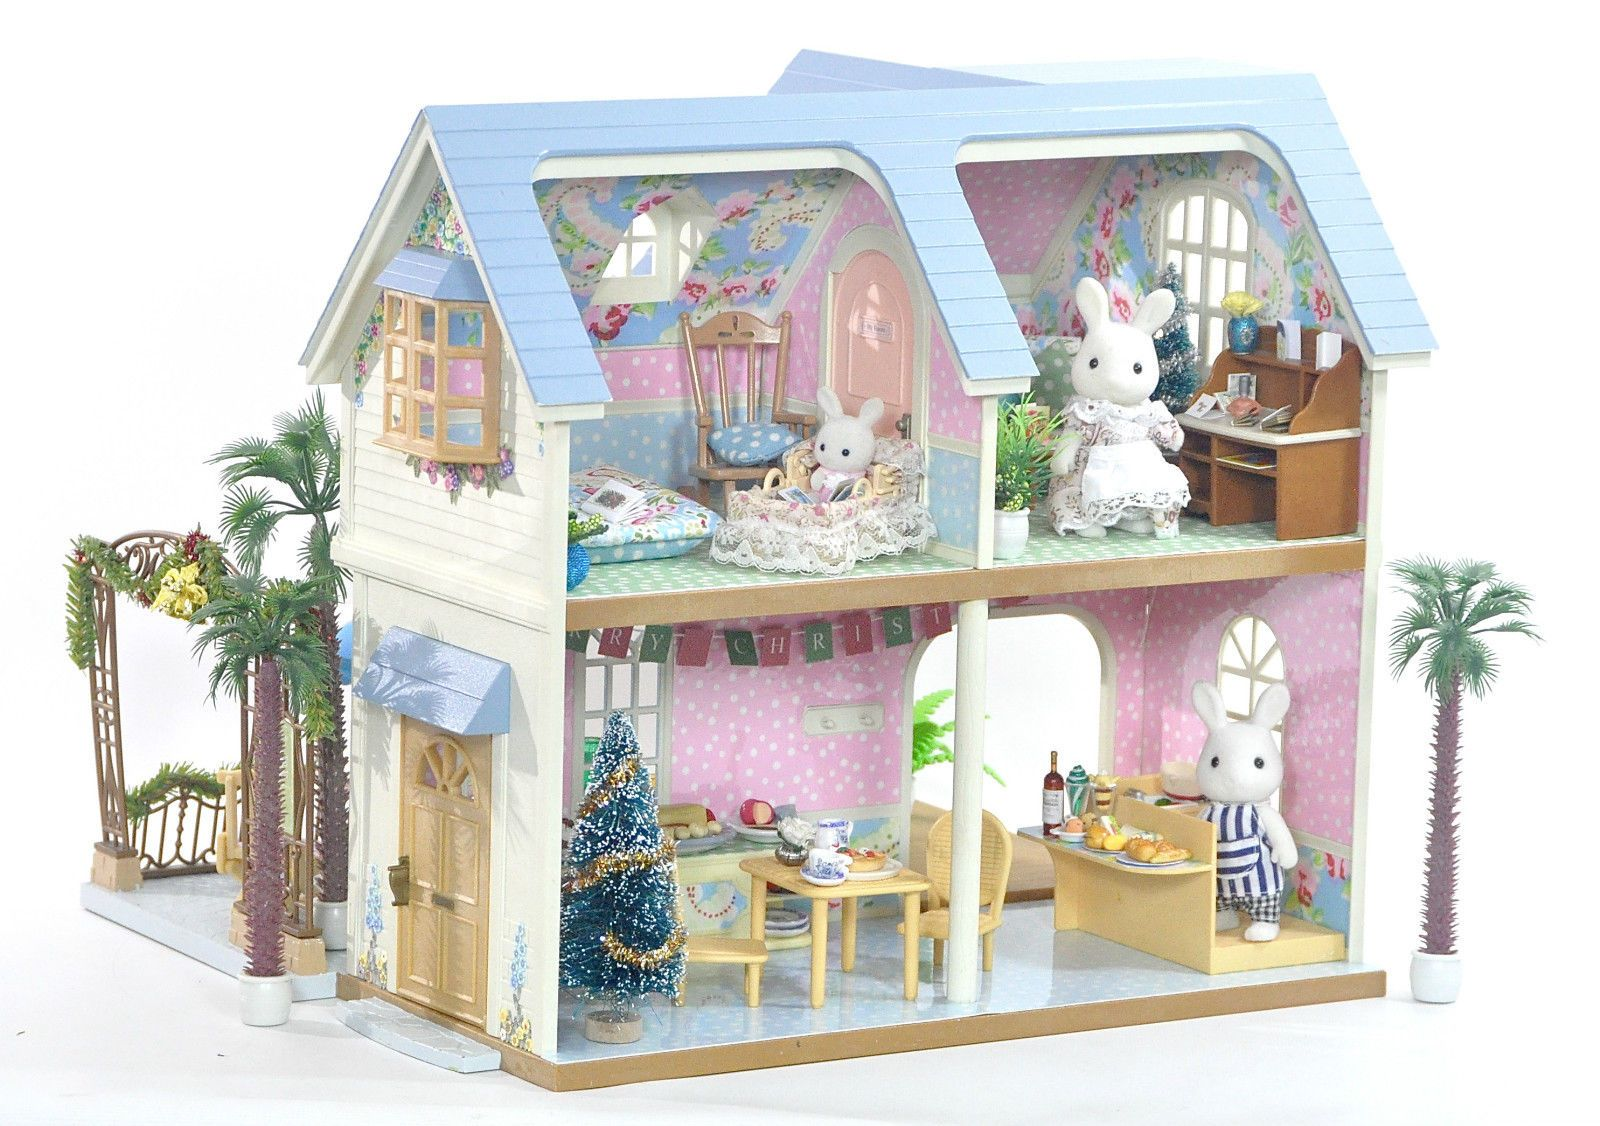 Fistuff sylvanian families decorated xmas courtyard restaurant house lots in